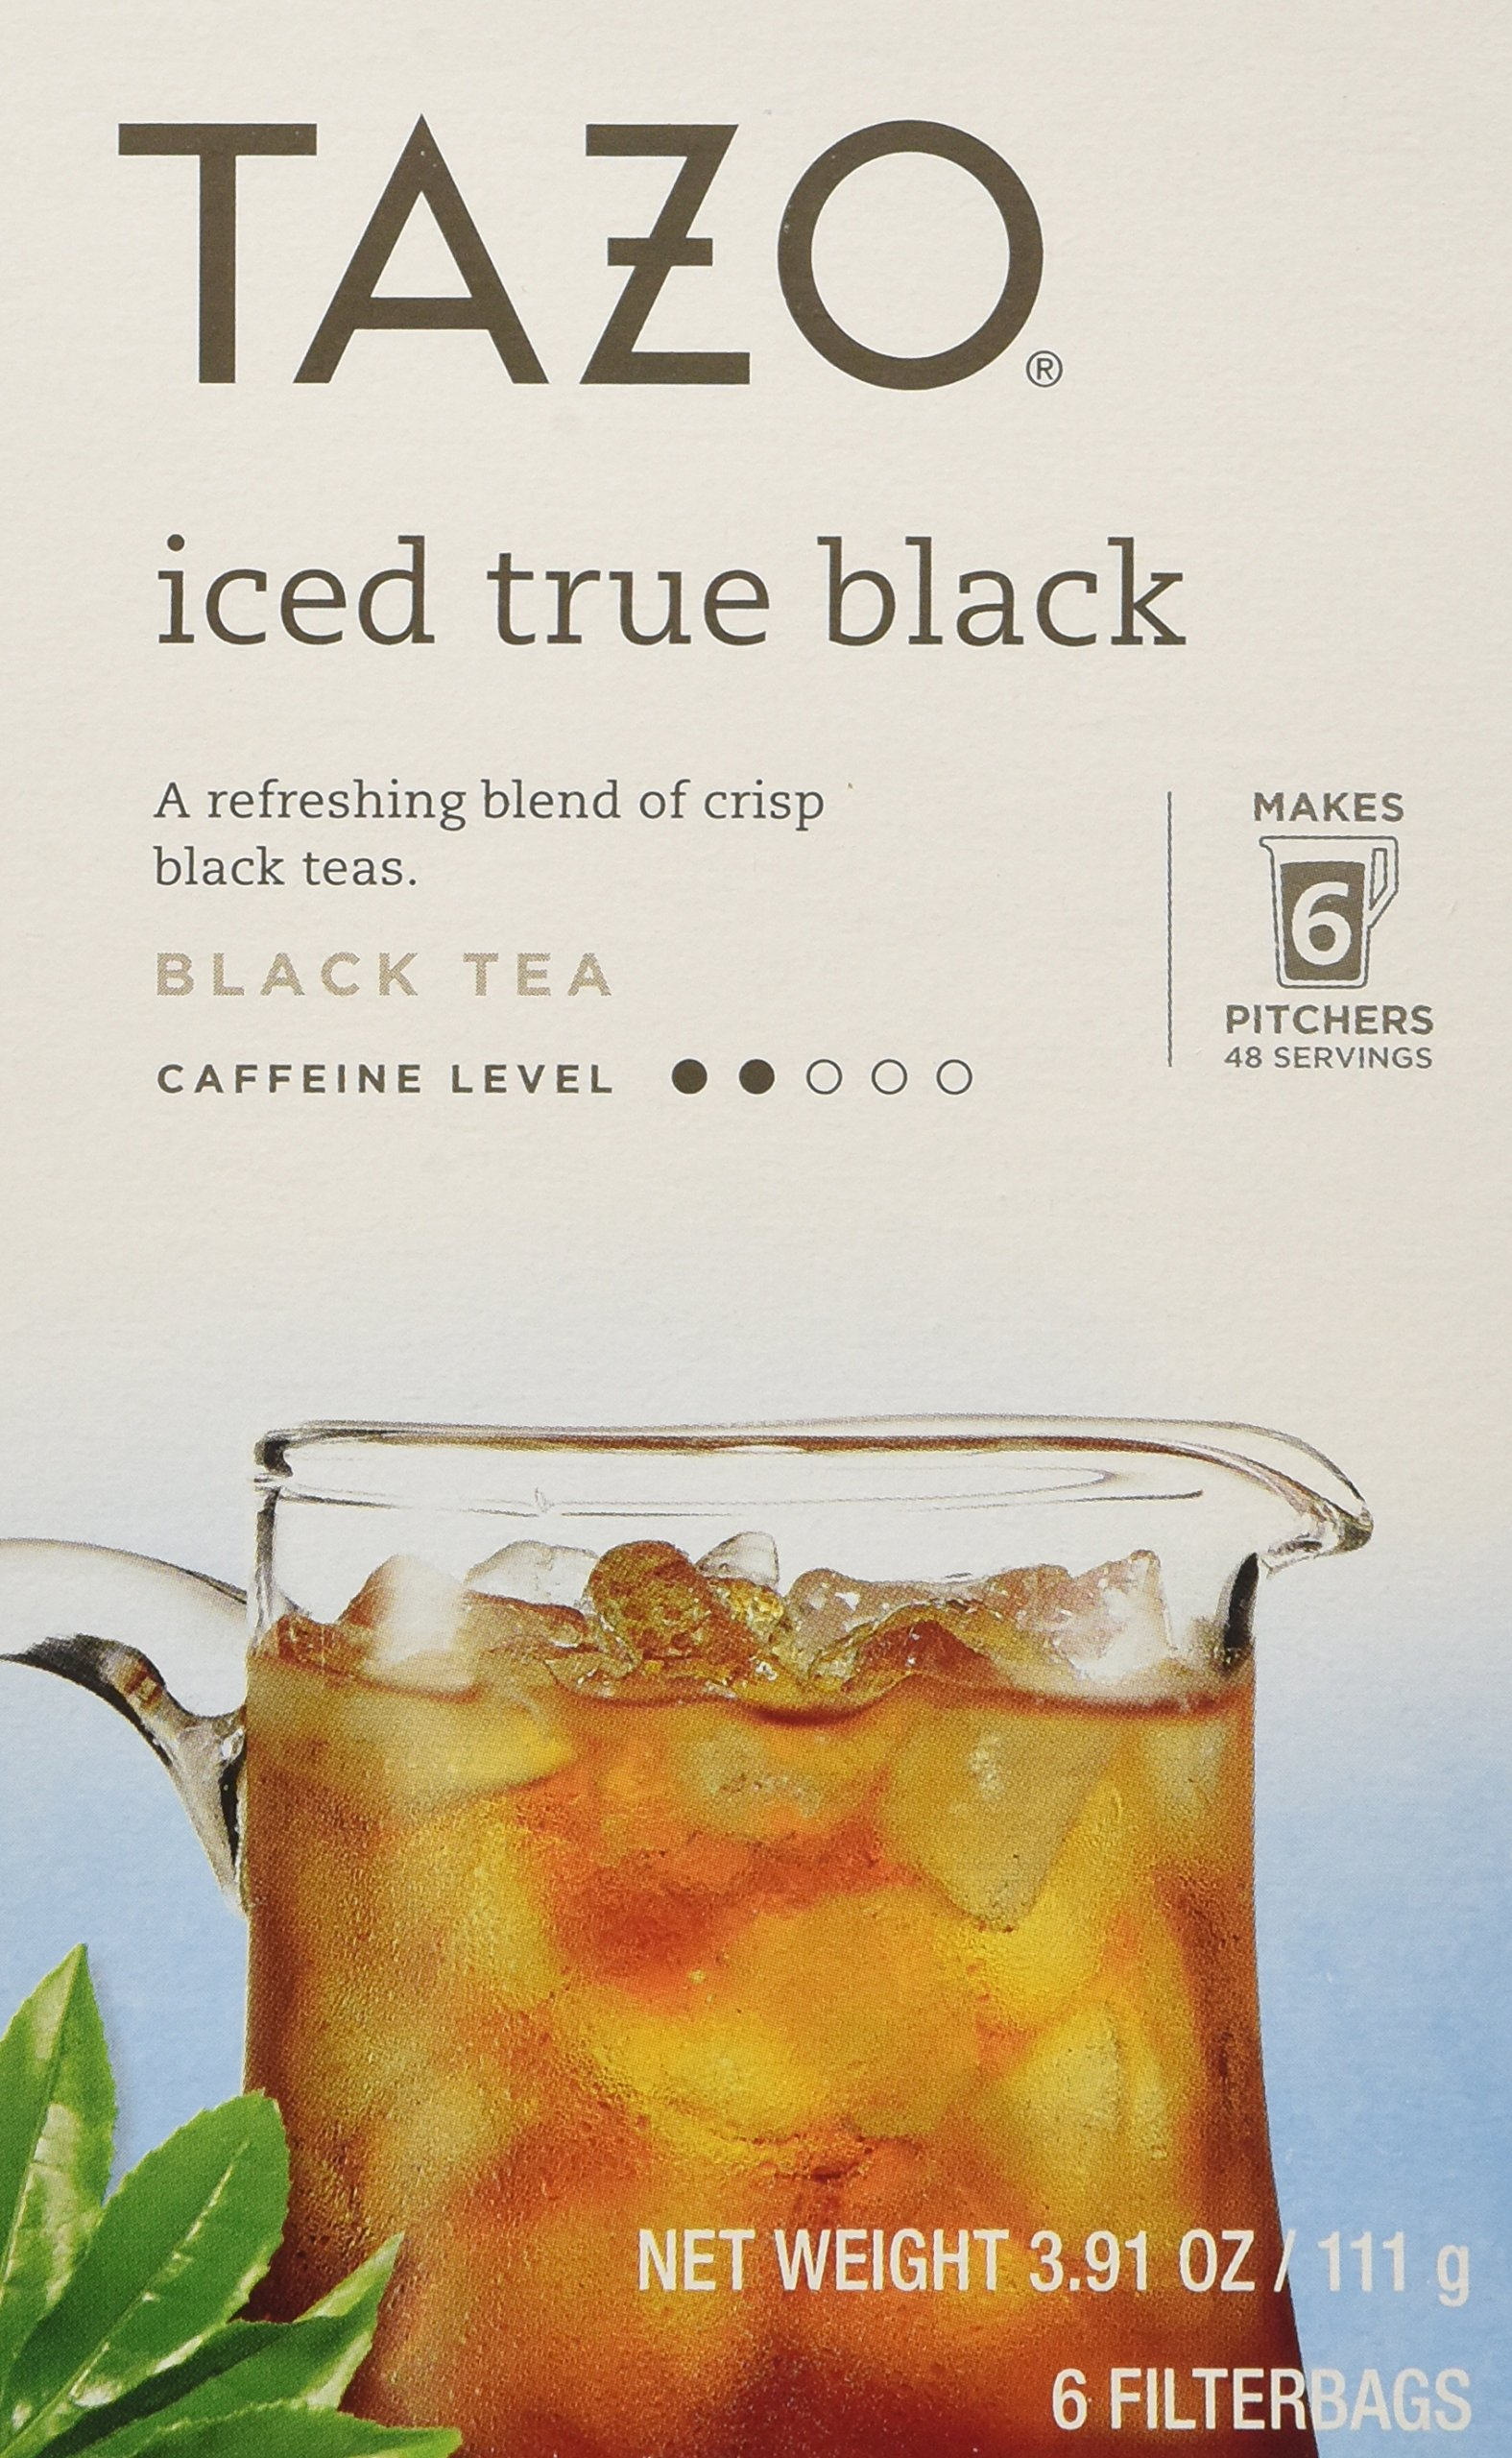 Tazo Iced True Black Filtered Tea - 6 Bags Per Box (Pack of 4) 3.91 oz